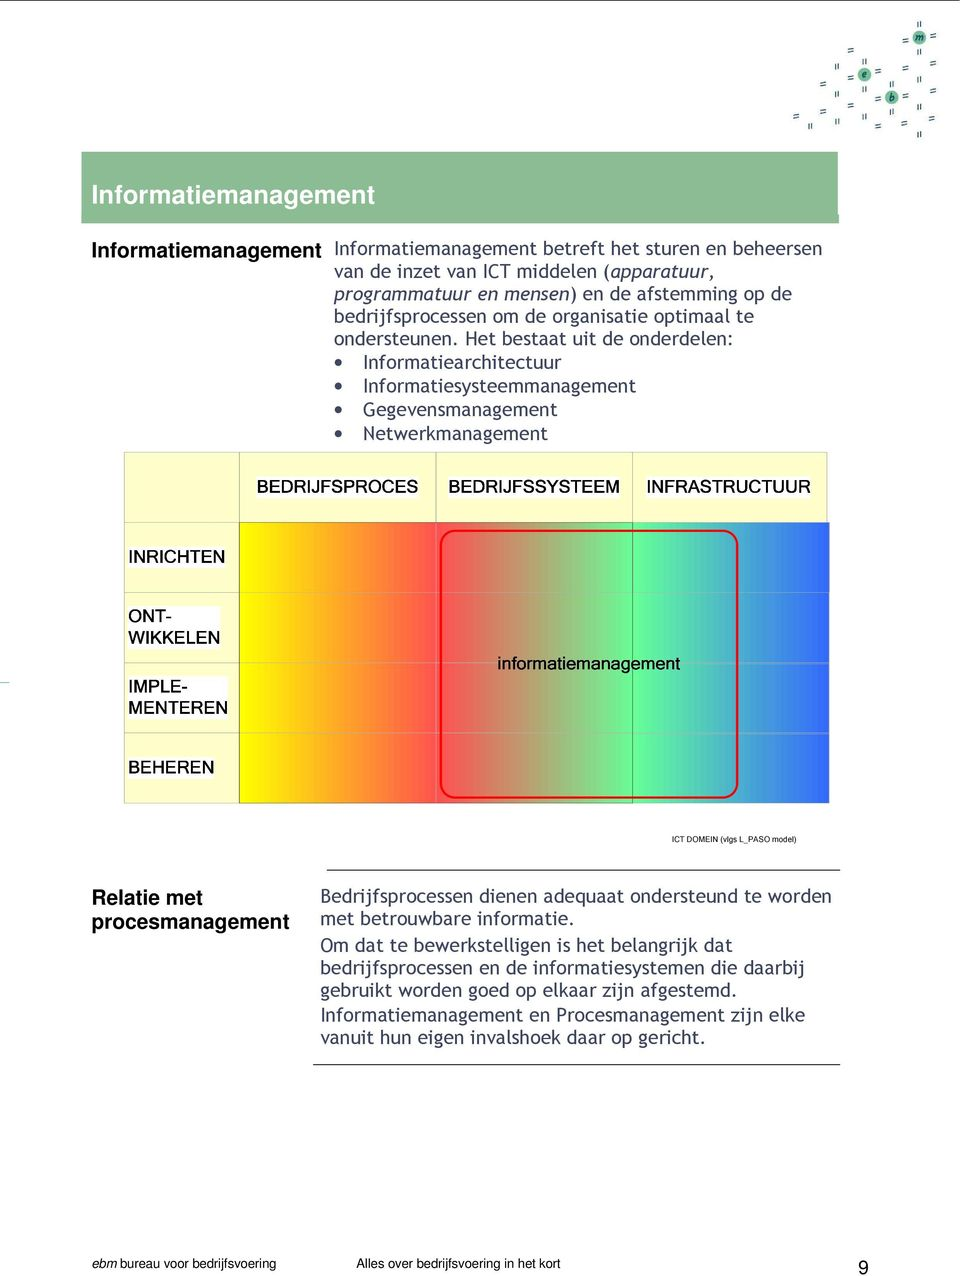 Het bestaat uit de onderdelen: Informatiearchitectuur Informatiesysteemmanagement Gegevensmanagement Netwerkmanagement ICT DOMEIN (vlgs L_PASO model) Relatie met procesmanagement